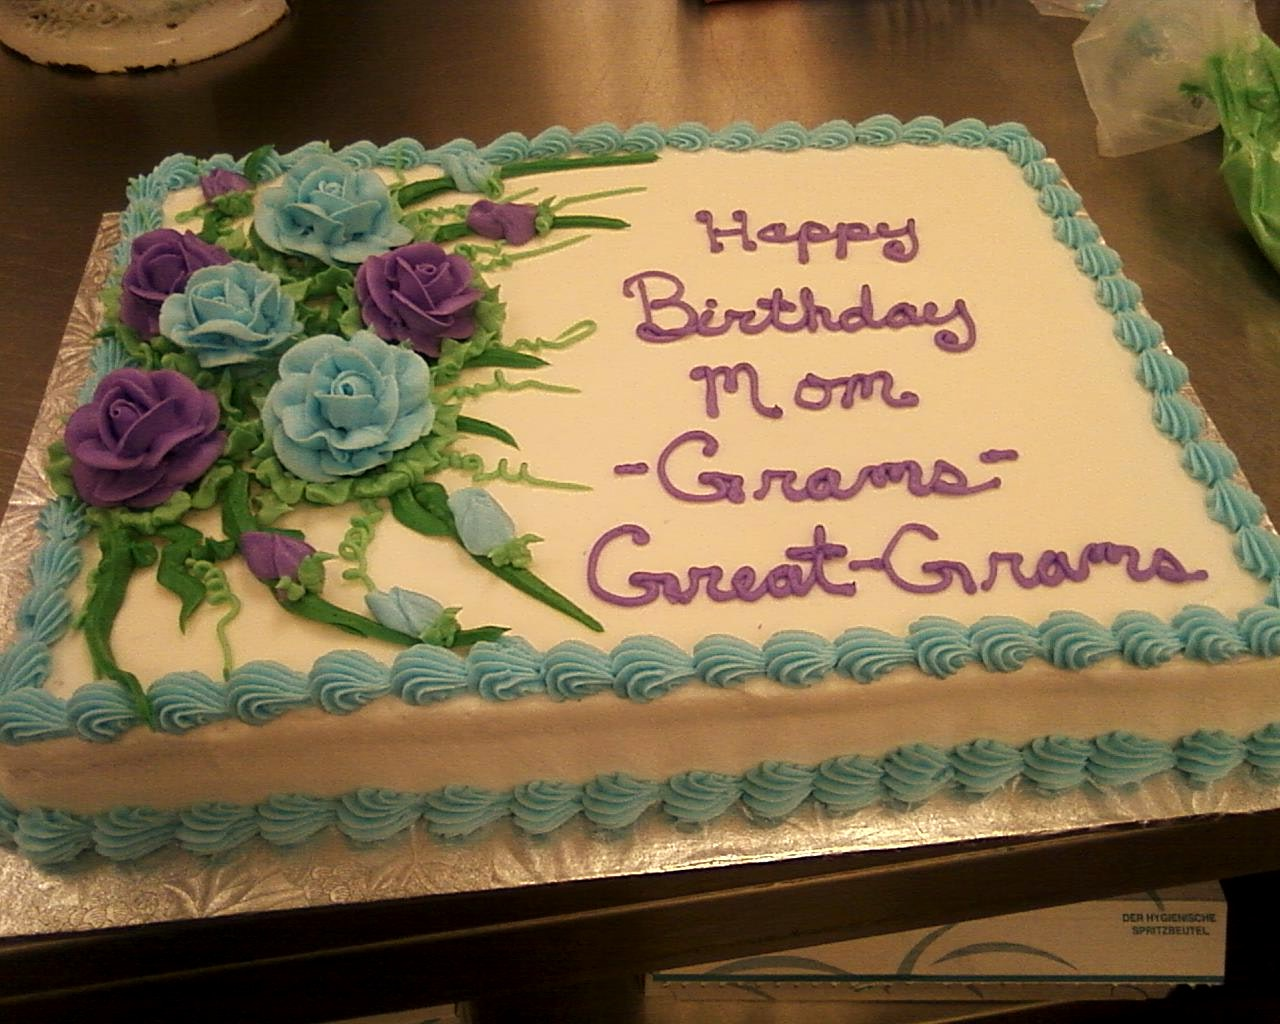 birthday sheet cake images ; outstanding-ideas-half-sheet-cake-and-impressive-birthday-sheet-cakes-delicious-cakes